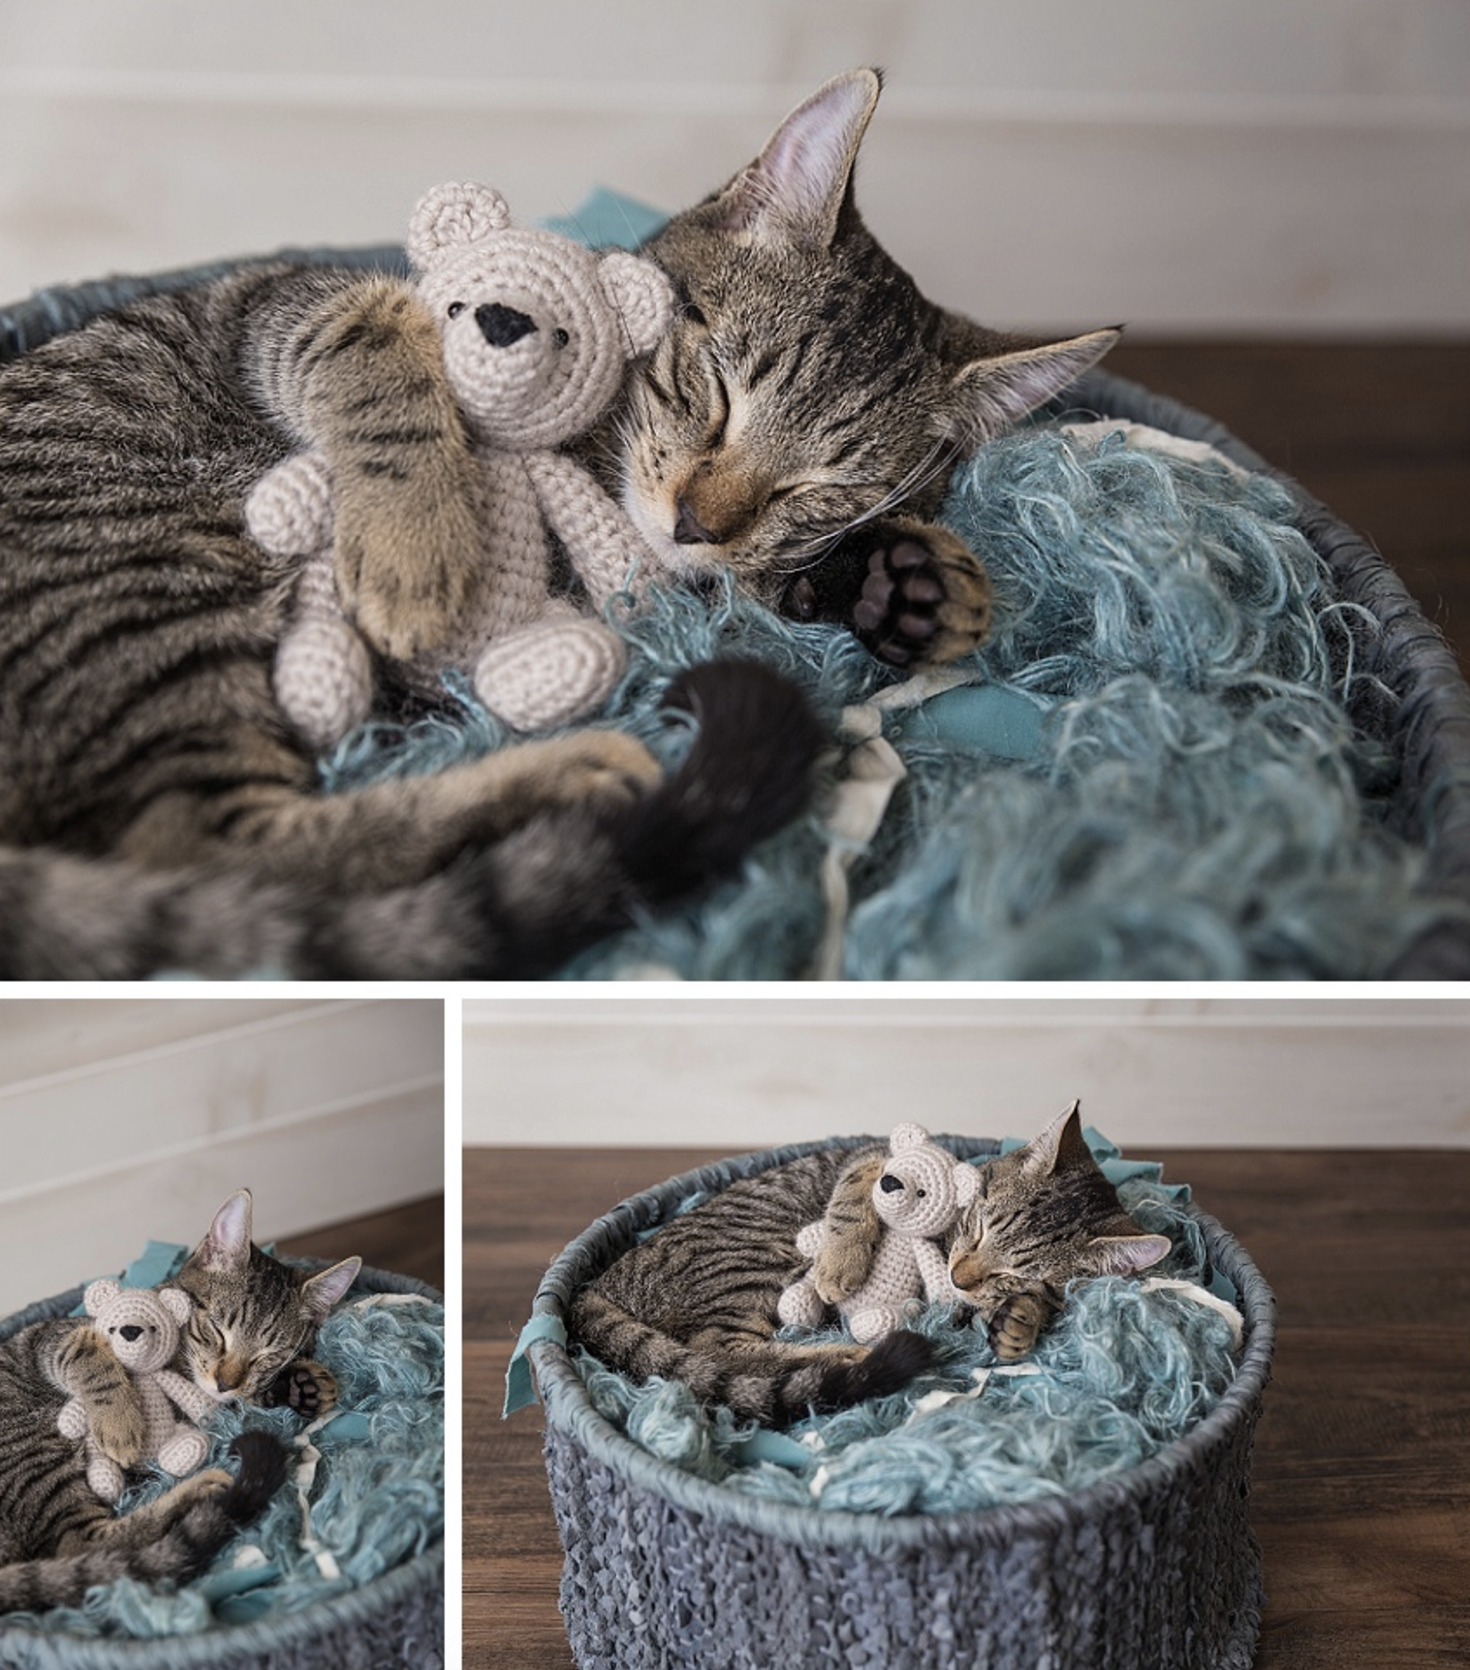 Stray Kittens Get Their Own Newborn Baby Photo Shoots Newborn Kittens Kittens